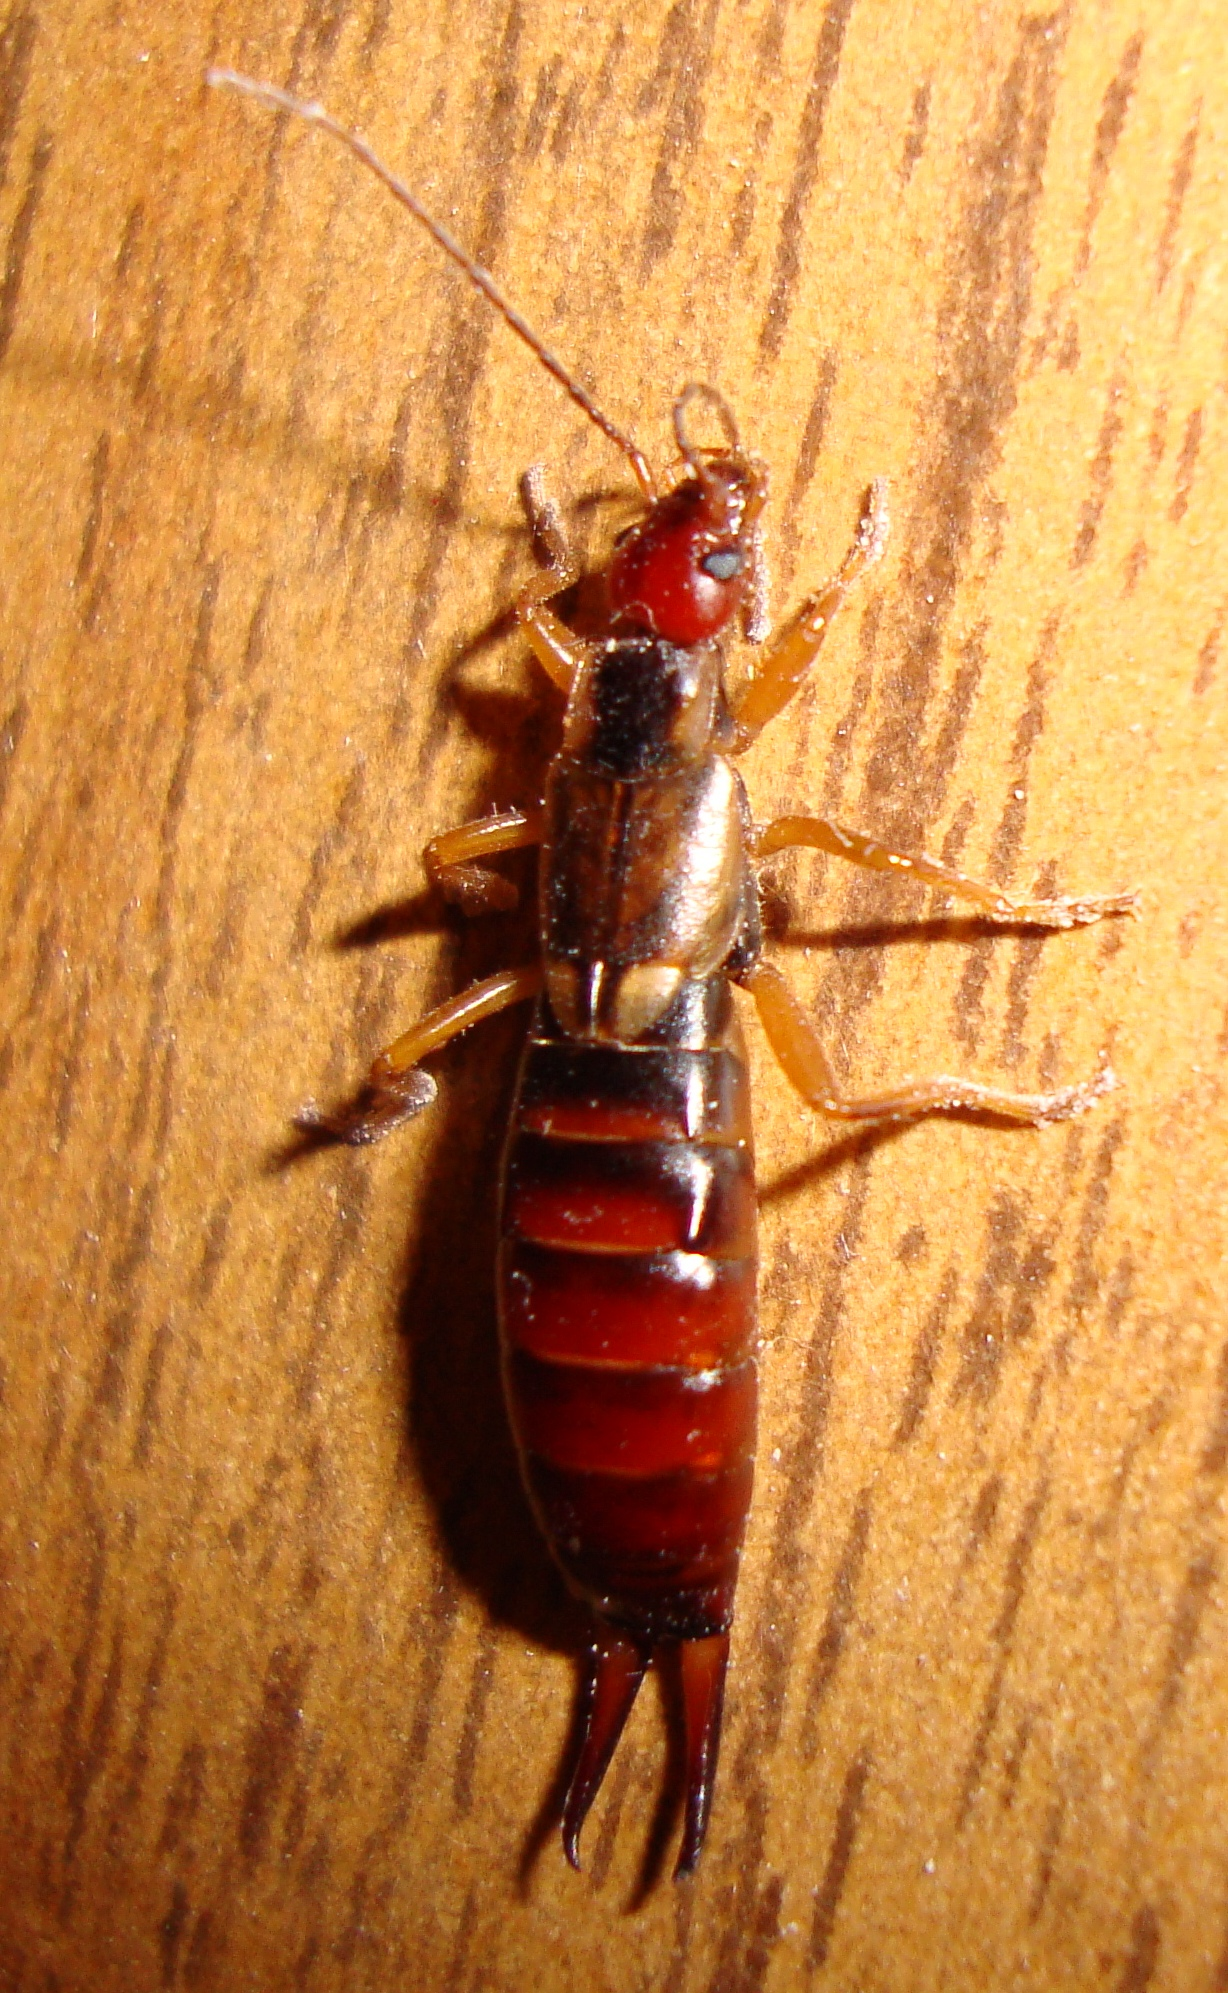 Pictures of insects found in homes What Kind